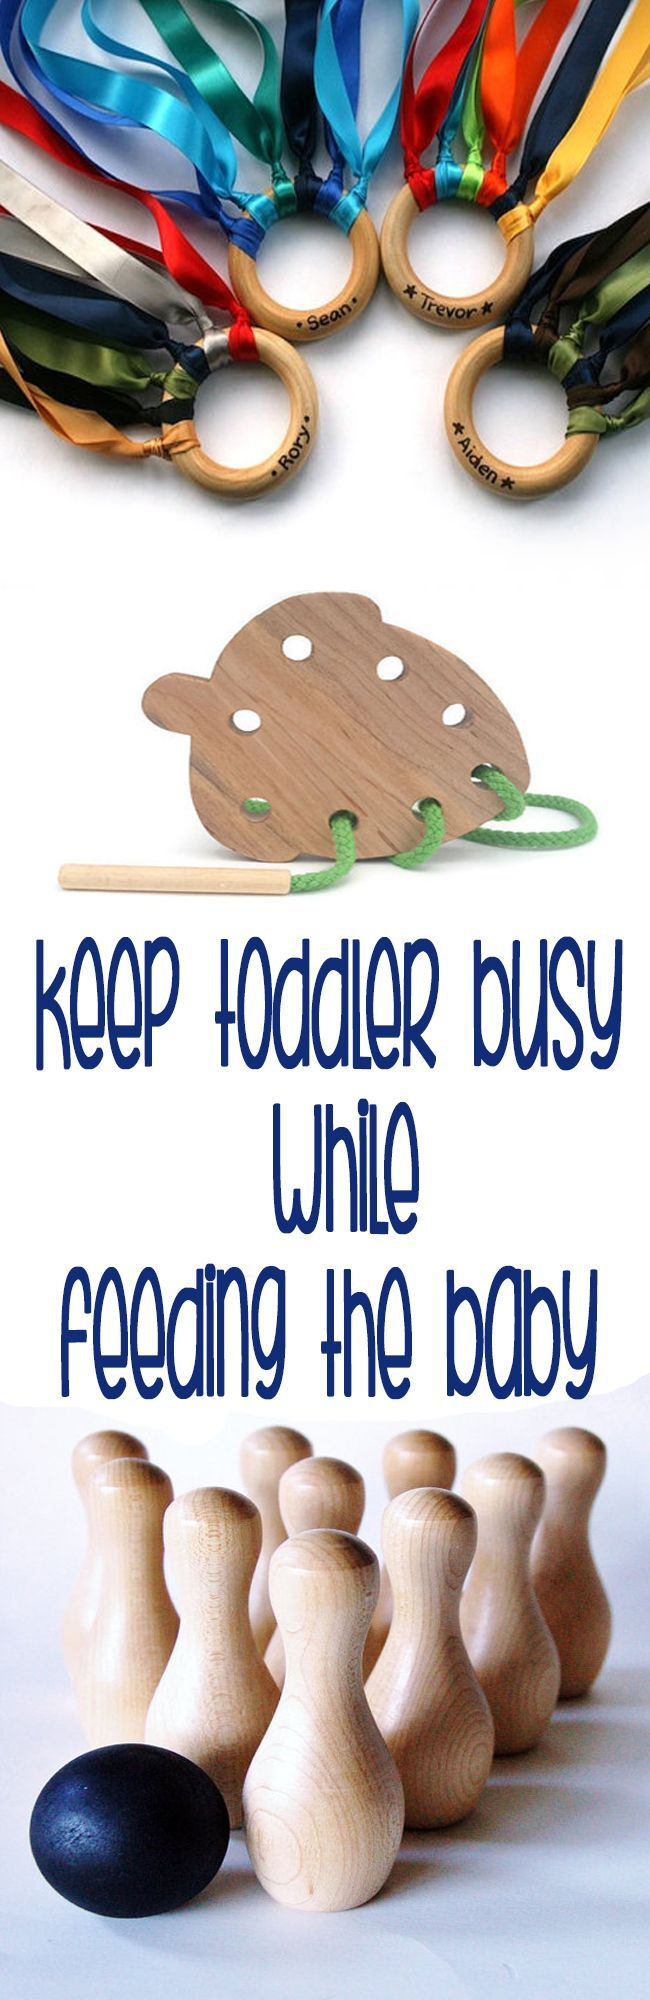 Feeding a baby can be difficult enough, but then throw in a toddler who wants to kiss baby, tickle baby's feet, or maybe even pinch baby can add a whole new level of difficulty. Here are a few ideas to help keep little one's hands (and minds) occupied while trying to feed the baby. This...